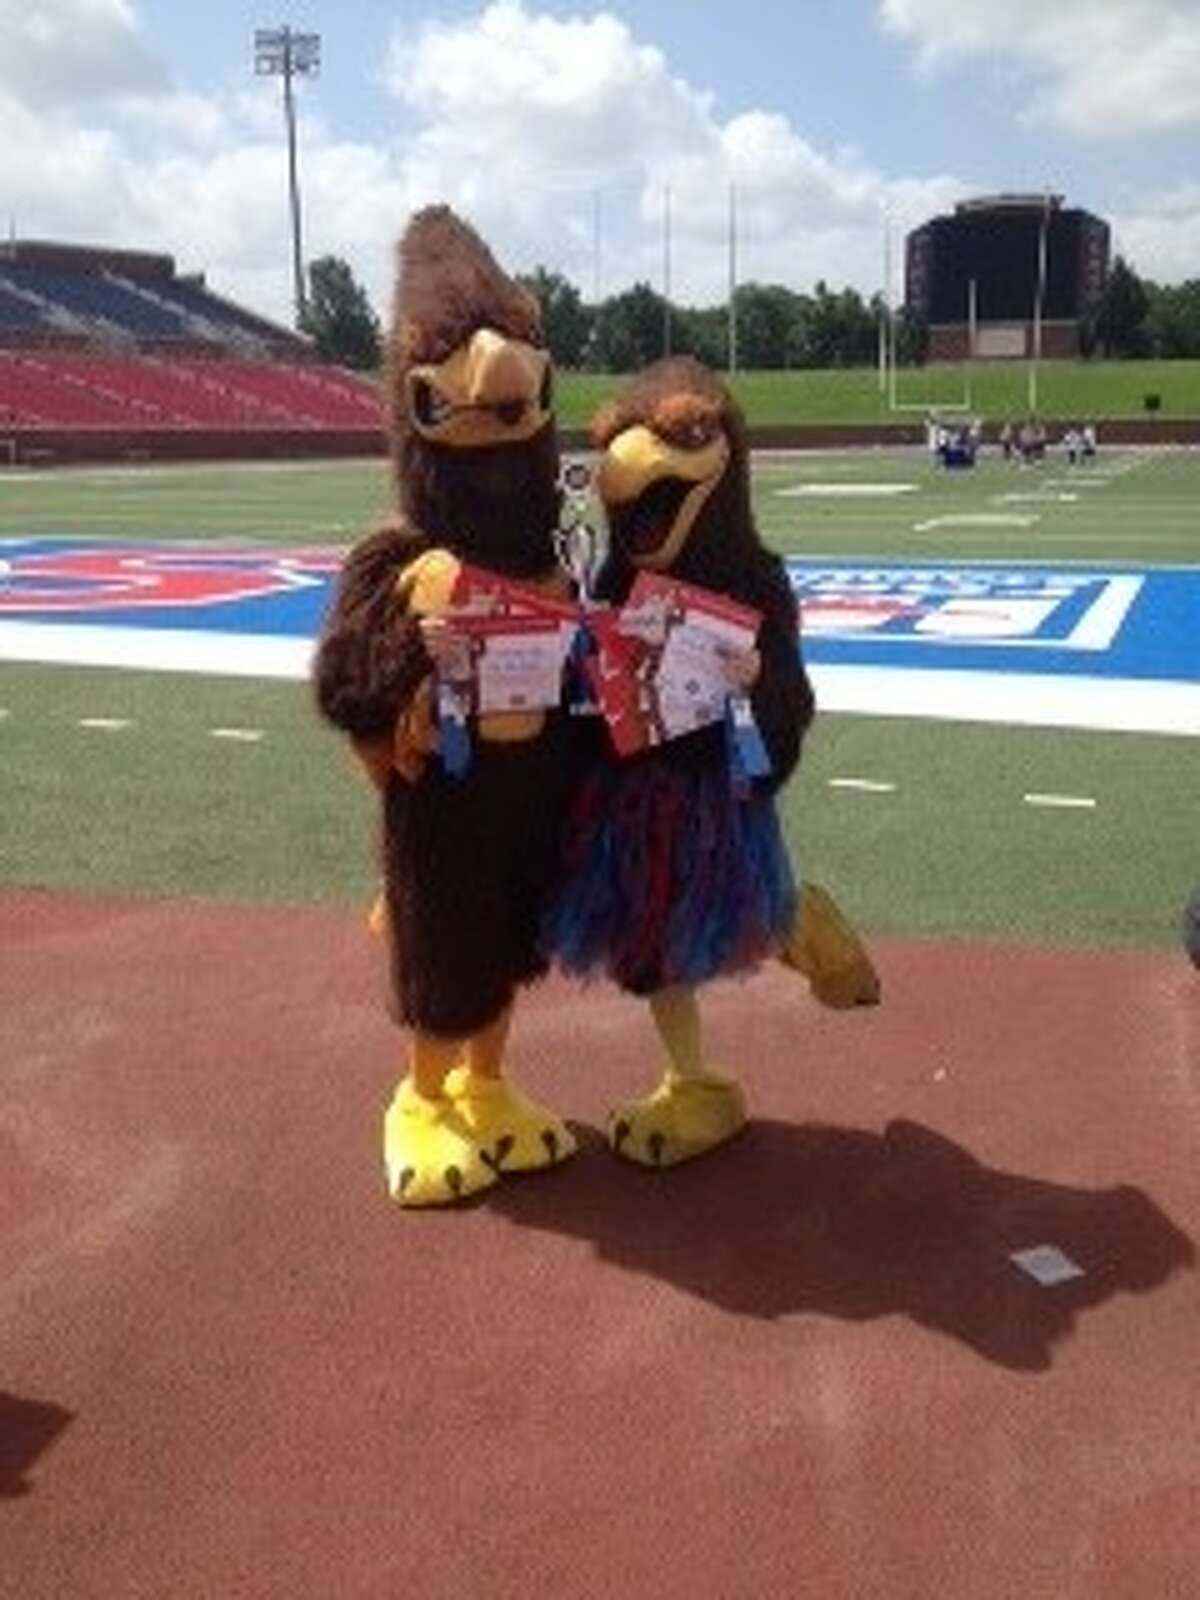 The Clear Lake mascots, Flip and Flex, were top performers at the National Cheerleading Association camp in Dallas.